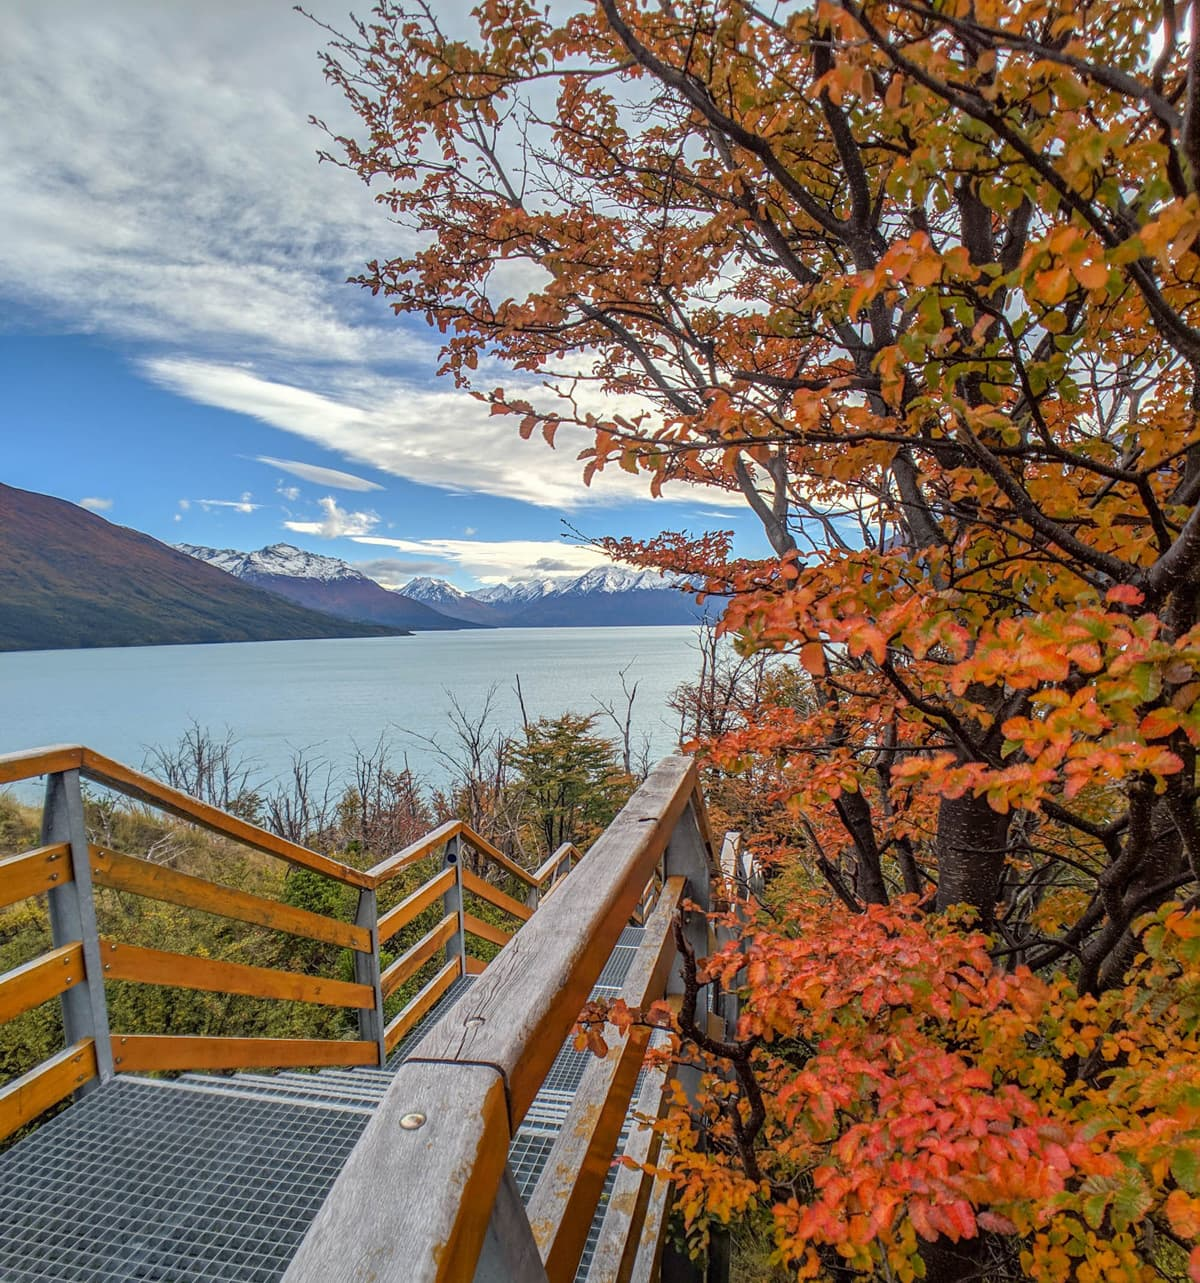 April is a dramatic time to visit argentina- and catch peak fall foliage.